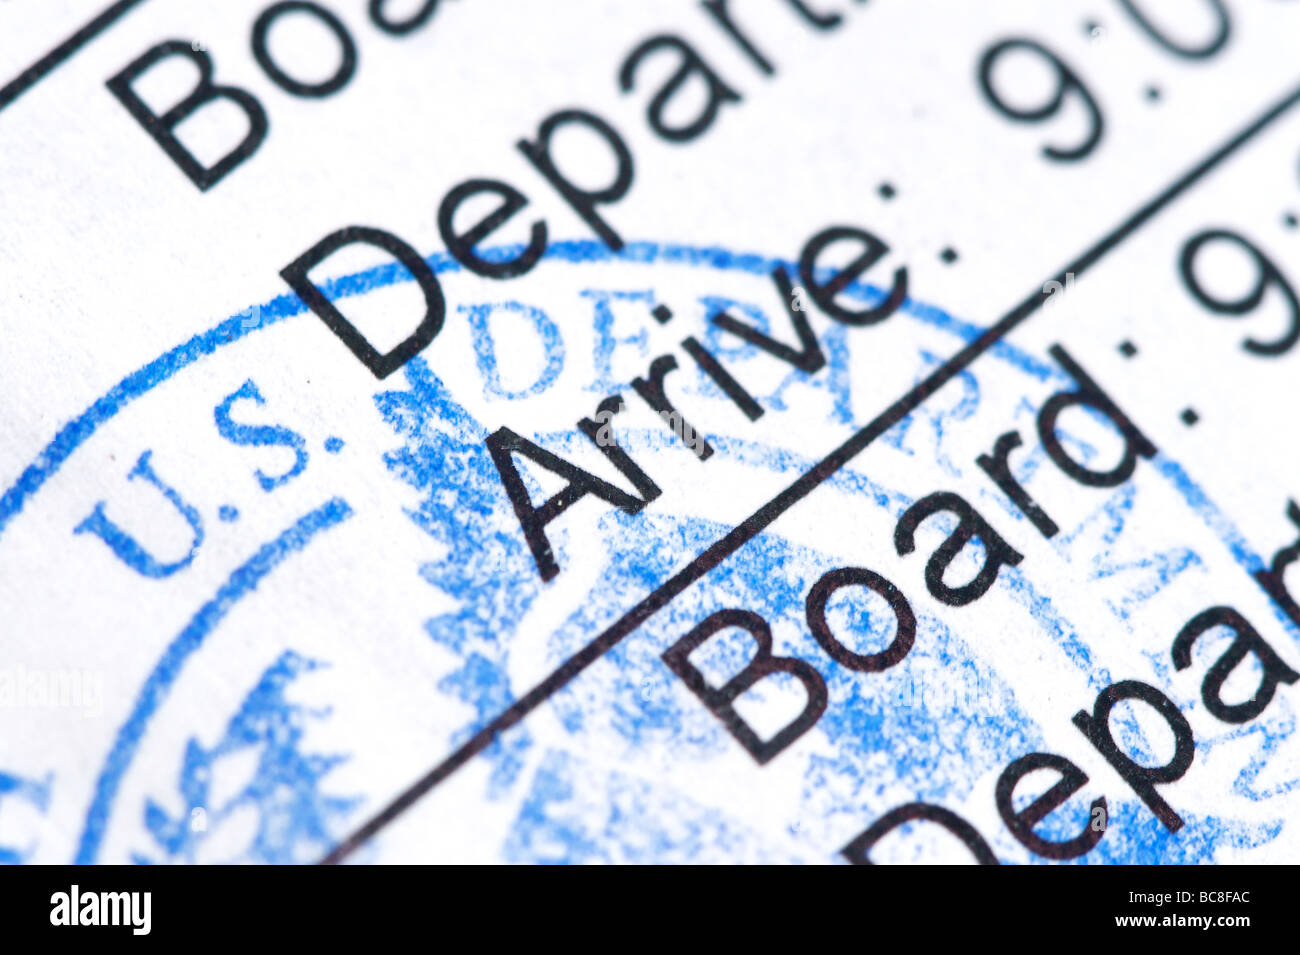 boarding pass and airline ticket with homeland security approval